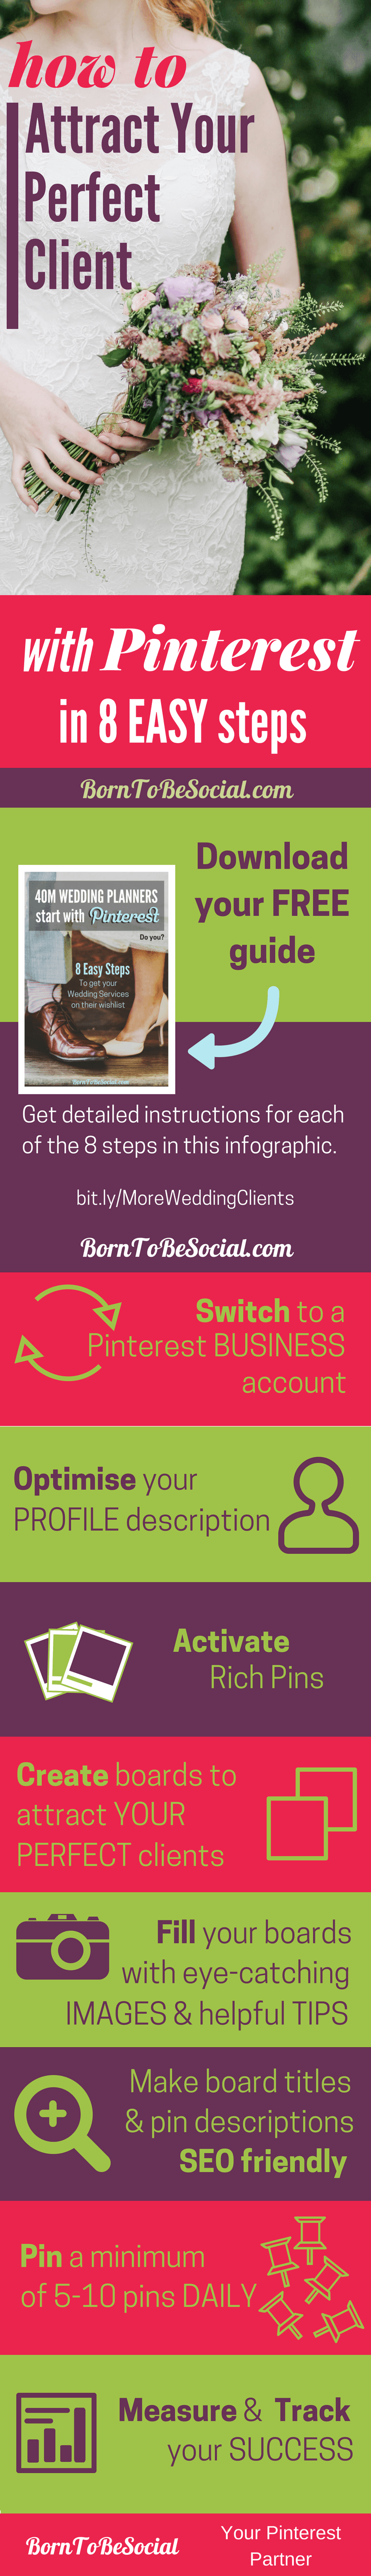 INFOGRAPHIC - HOW TO FIND WEDDING CLIENTS WITH PINTEREST for Hotel Wedding Venues, Wedding Planners & Photographers - 8-Step Checklist & Action Plan. Your perfect clients spend a LOT of time on Pinterest planning their perfect wedding and wedding reception, but are they finding their way to the wedding services on your website? |via @BornToBeSocial, Pinterest Marketing & Consulting #PinterestExpert #PinterestWedding #ukweddingvenues #ChateauWedding #PinterestForBusiness #PinterestMarketingTips